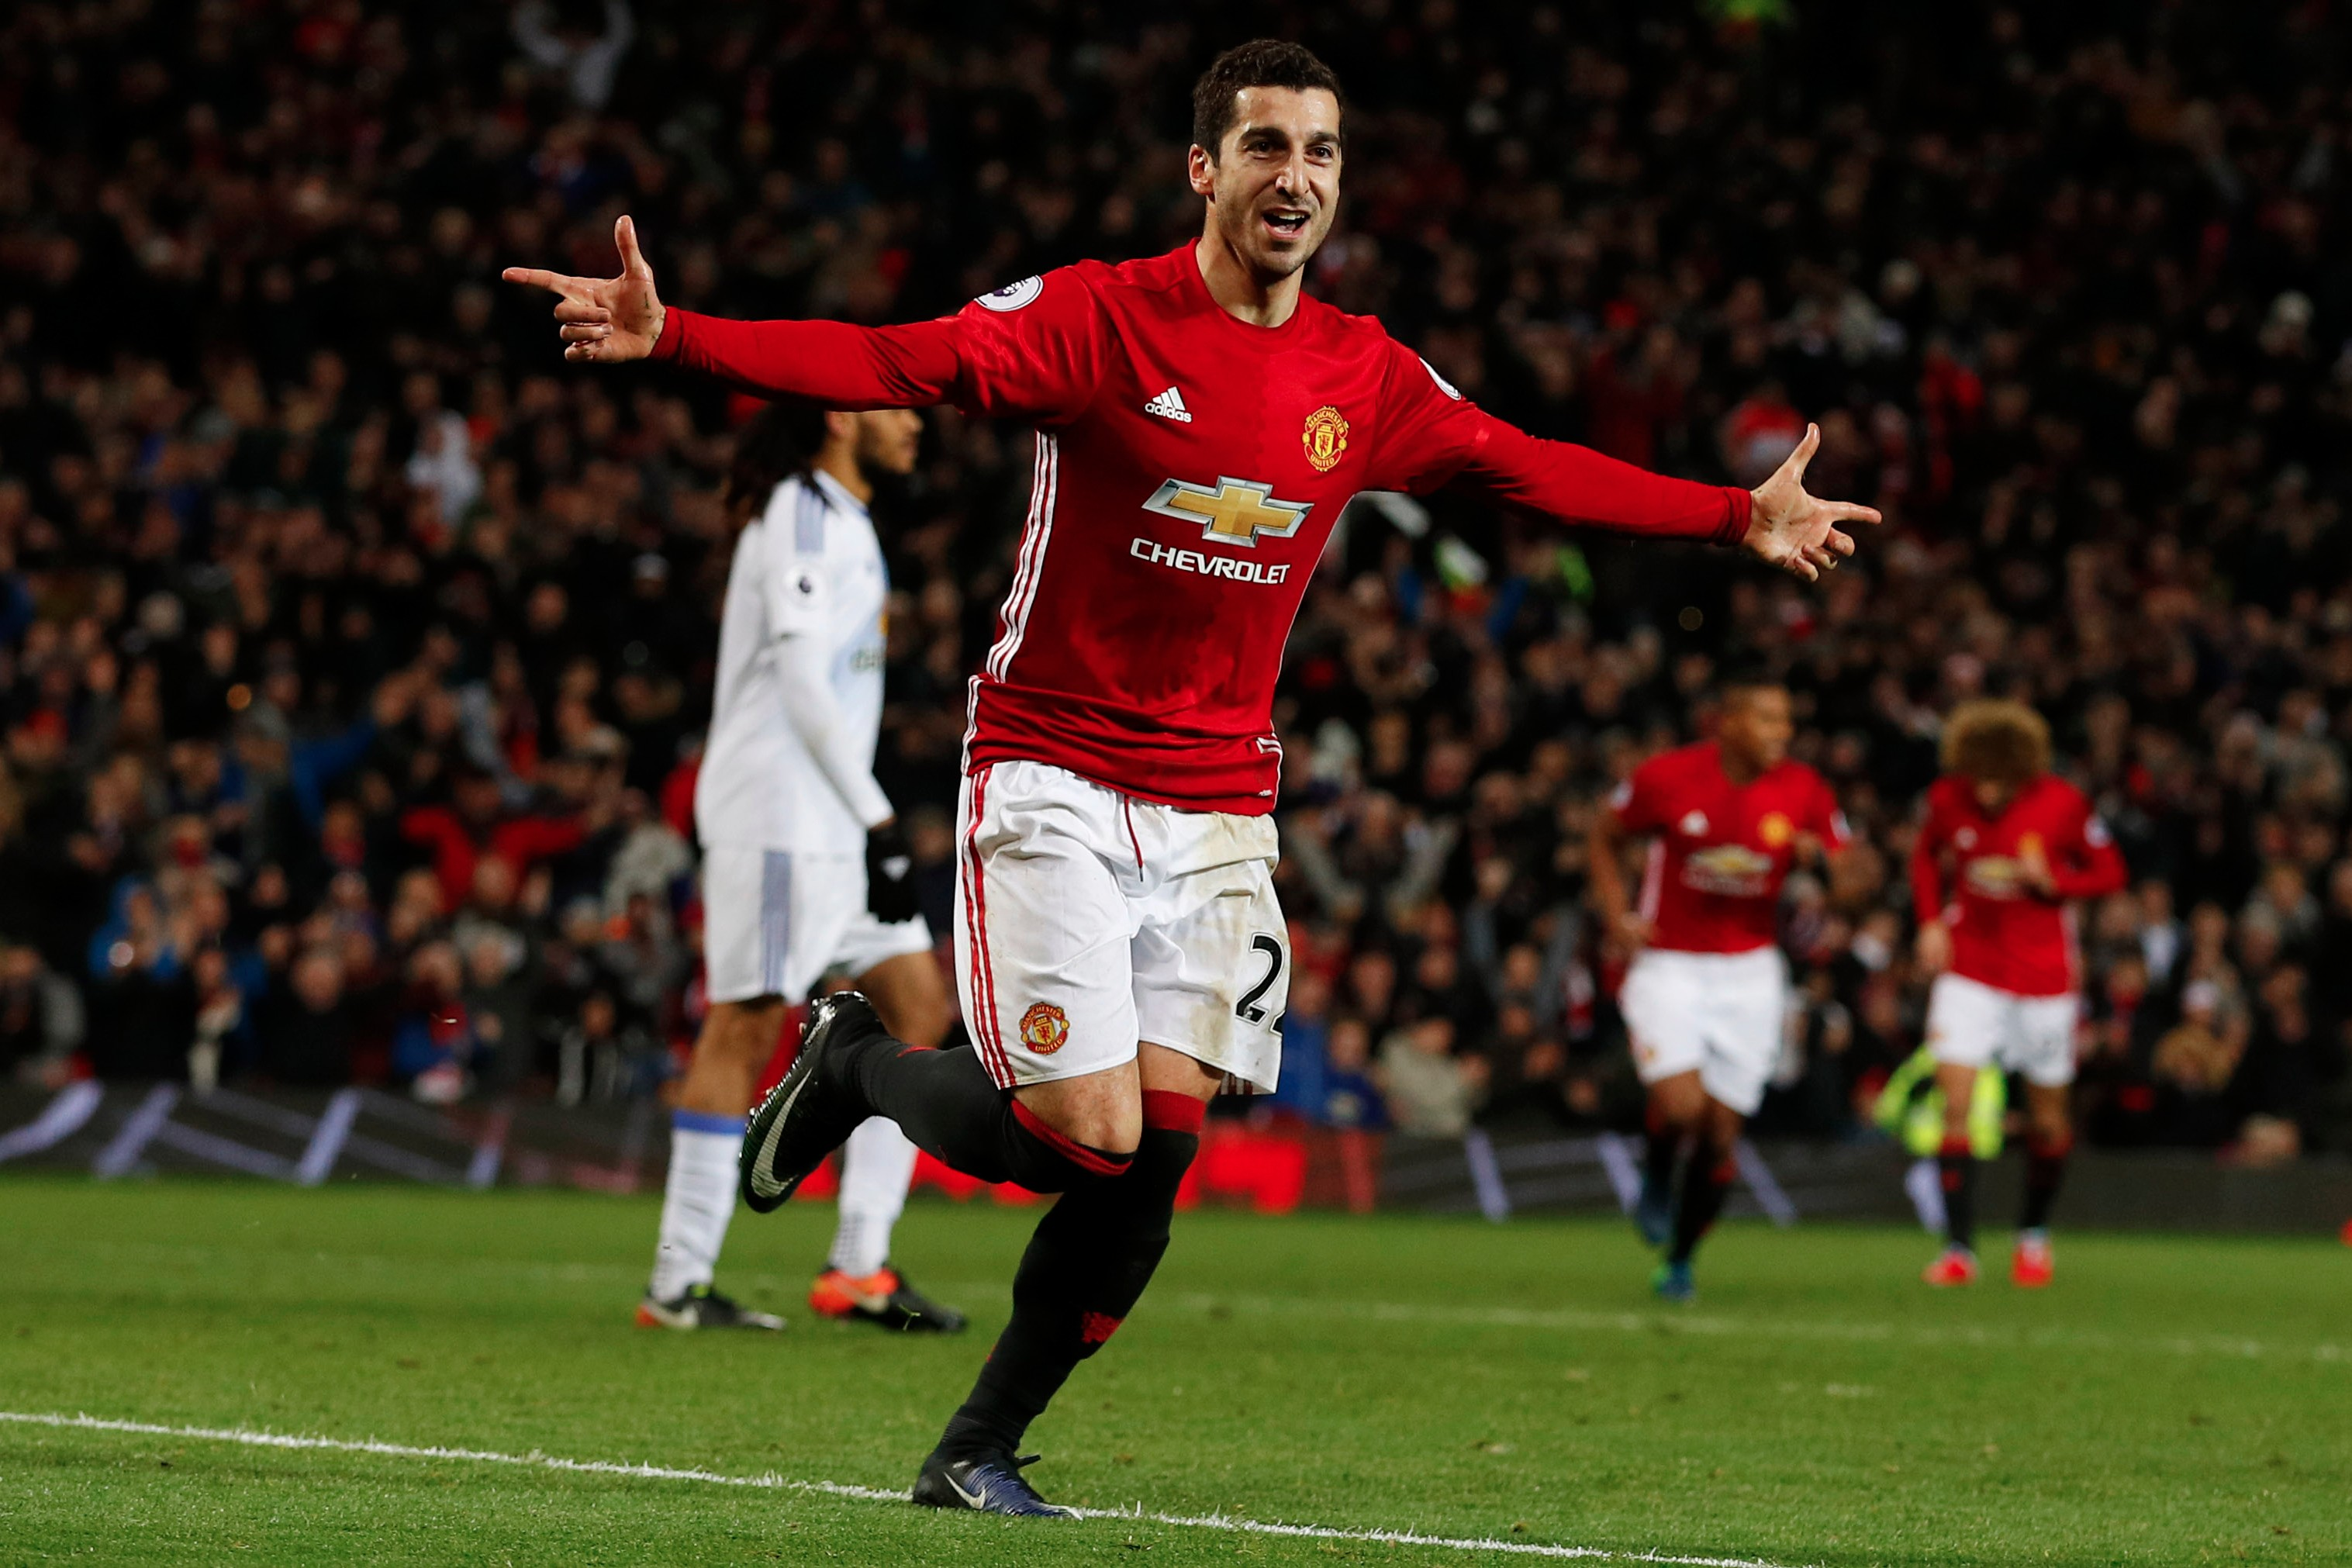 Manchester United look to stay hot against rivals Liverpool